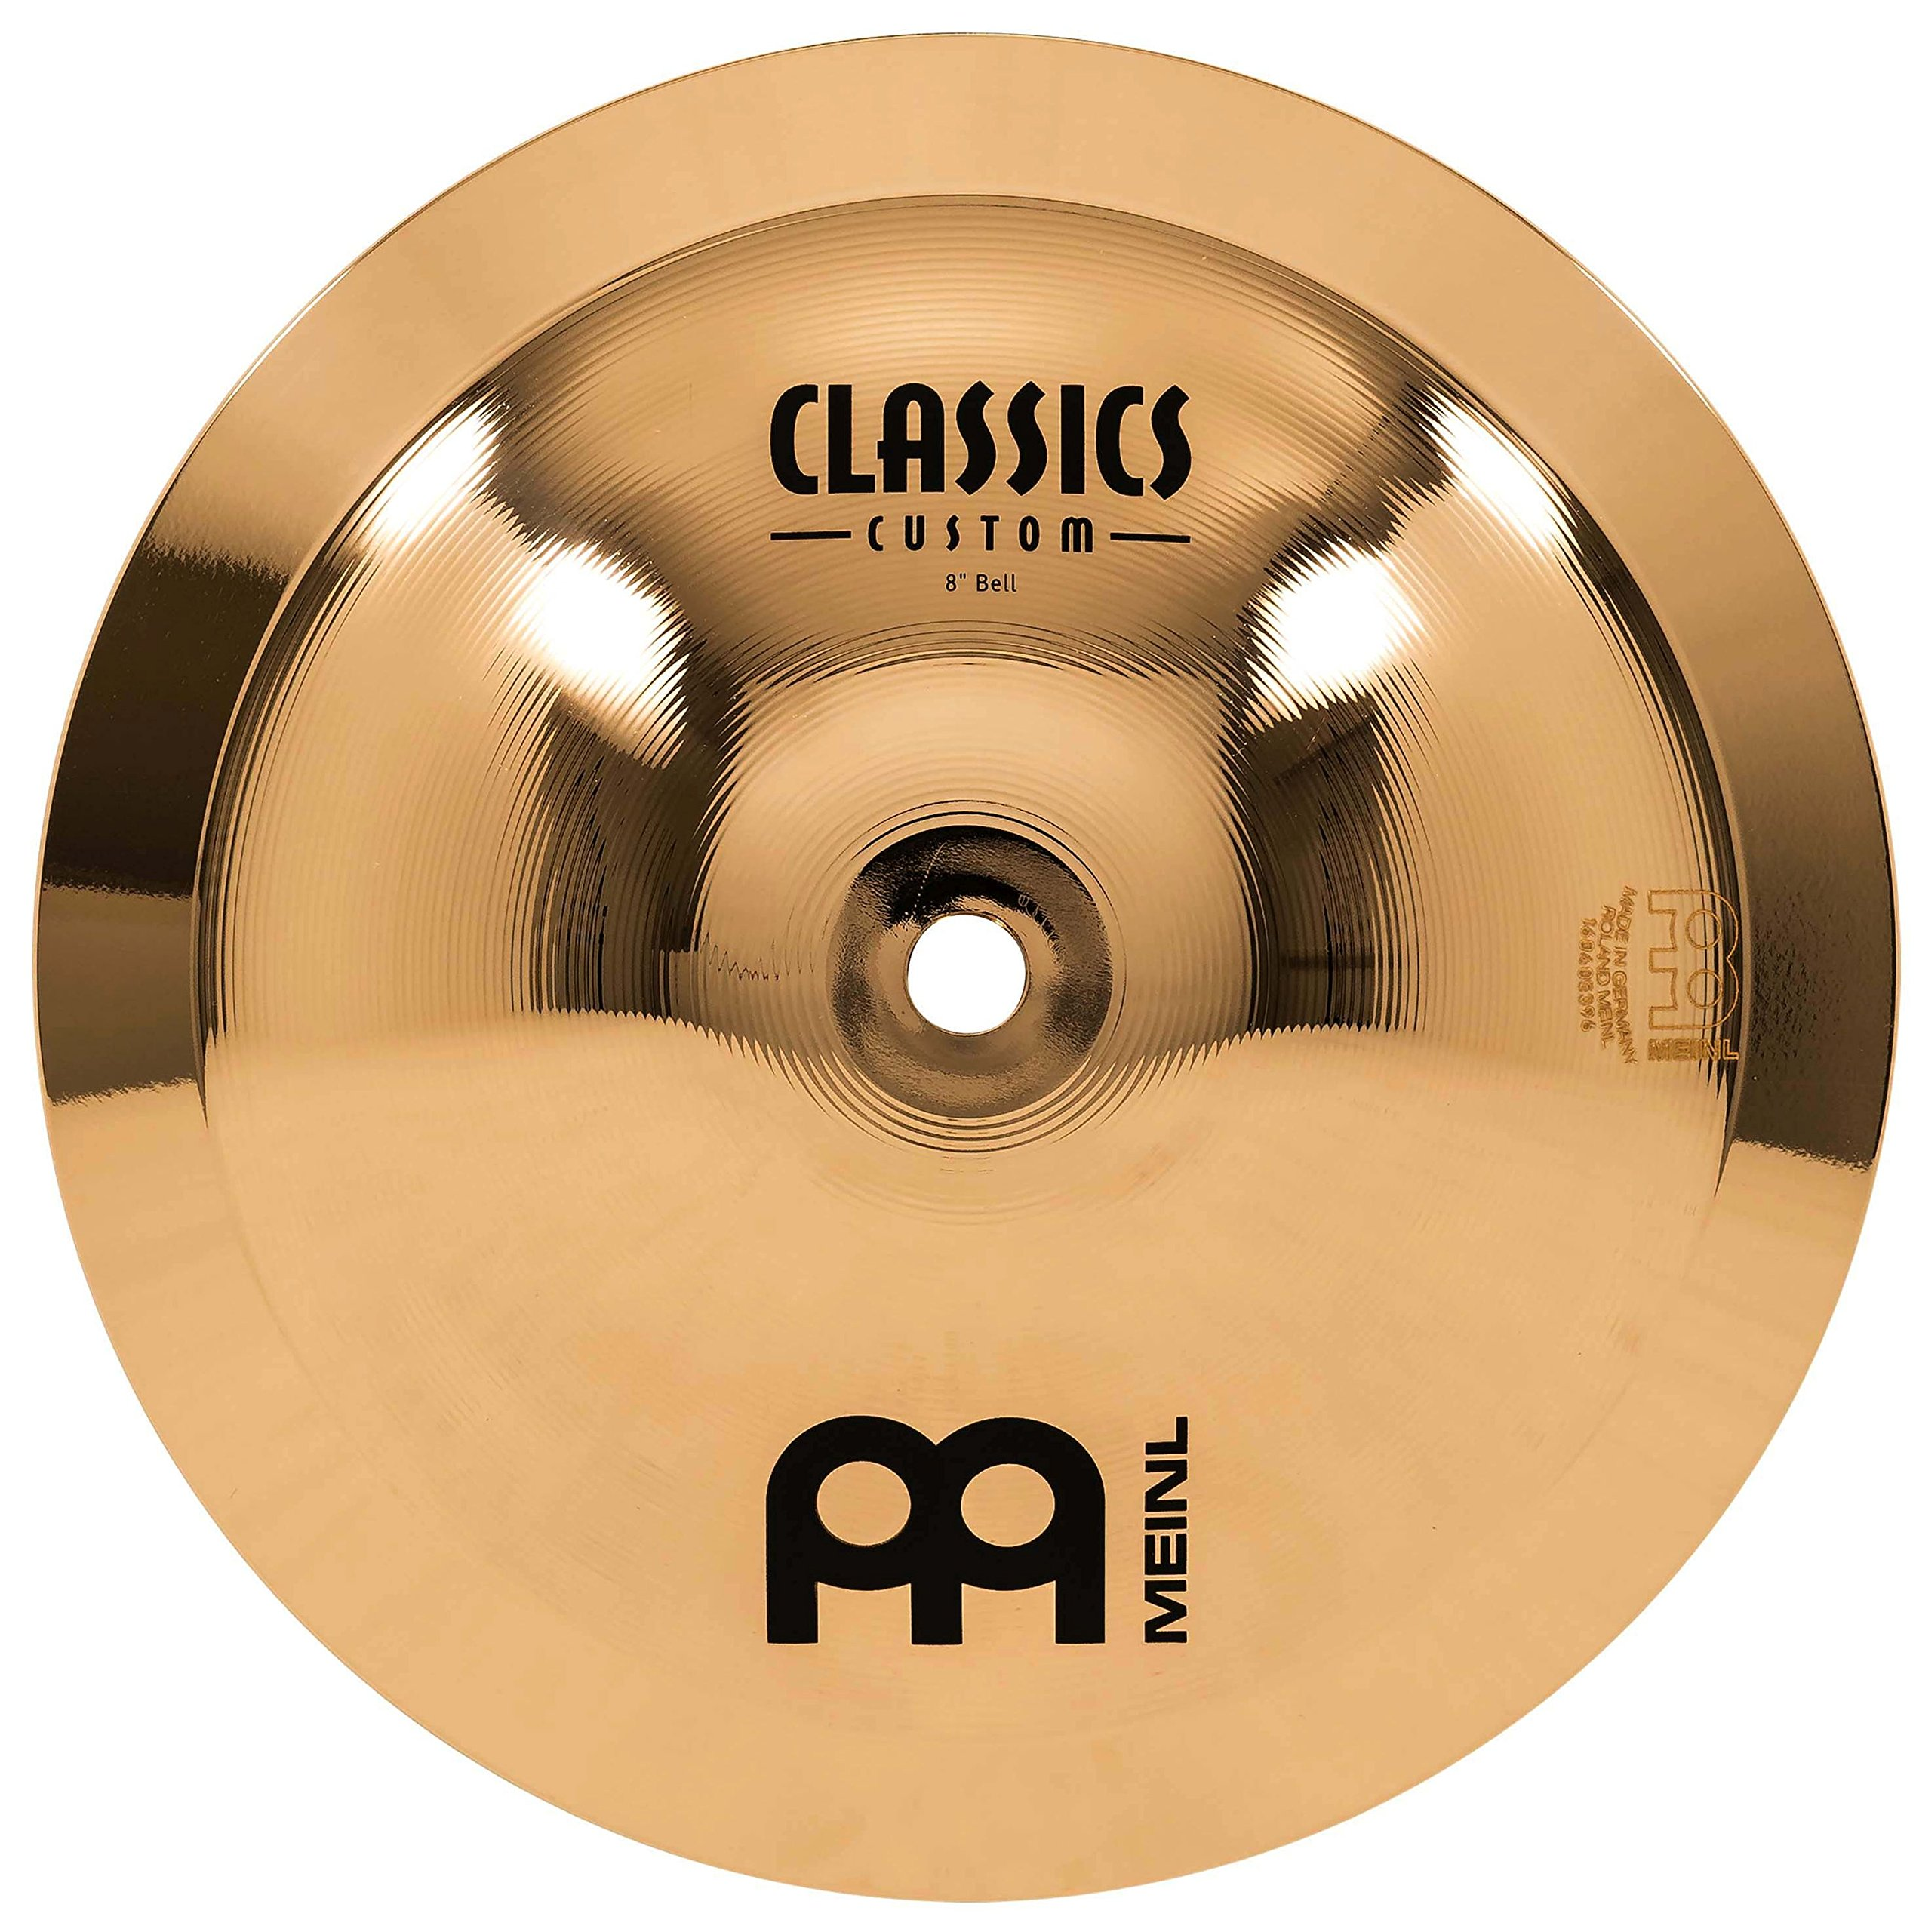 Meinl 8'' Bell - Classics Custom Brilliant - Made In Germany, 2-YEAR WARRANTY (CC8B-B) by Meinl Cymbals